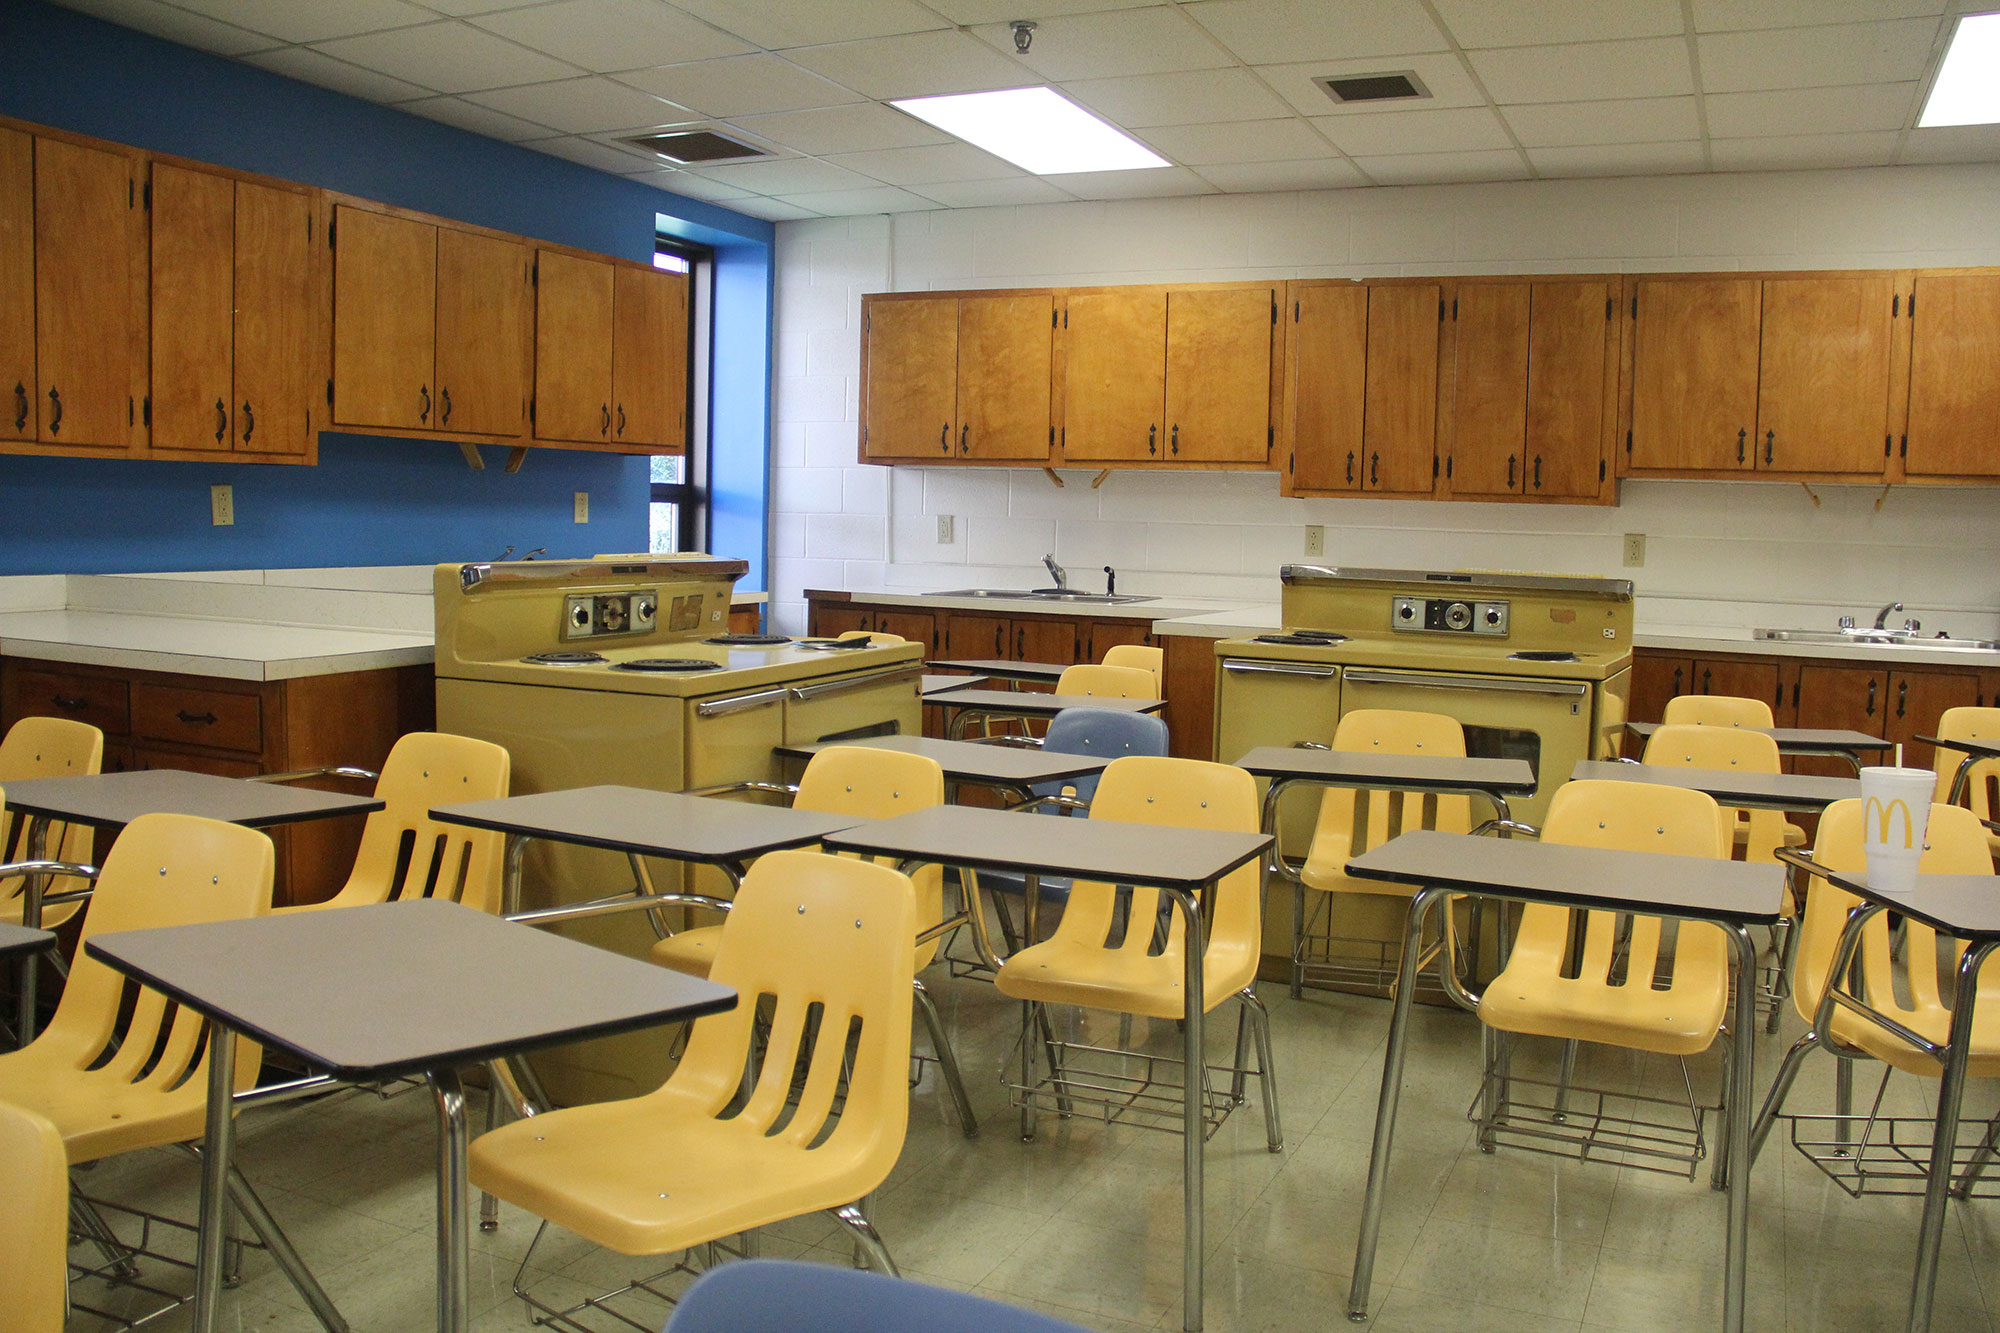 Classroom Design To Promote Literacy ~ Using creative classroom design to promote instructional